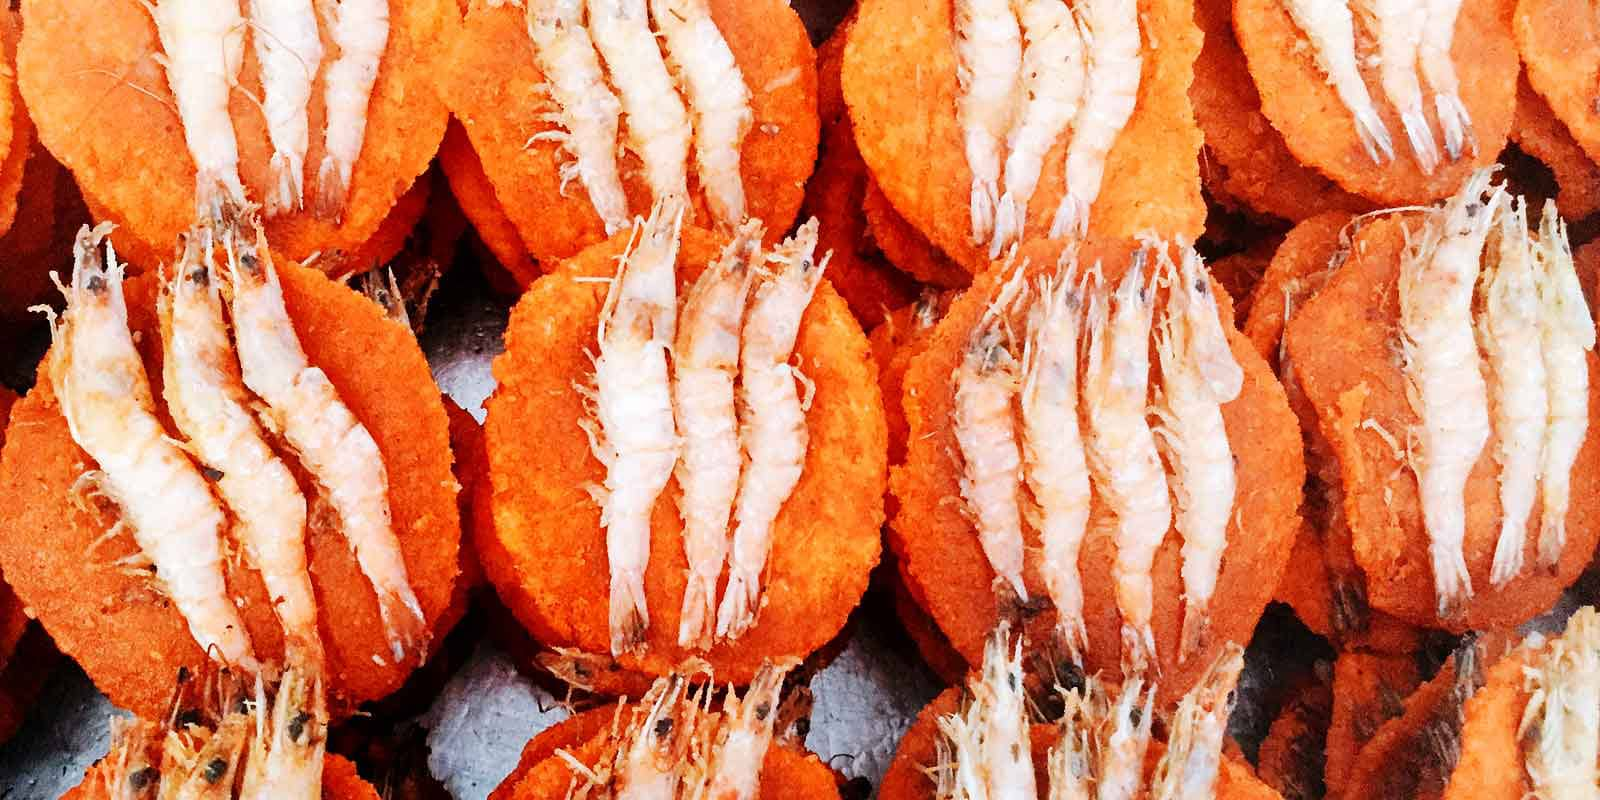 Get to know Colombo, Sri Lanka on a tuk tuk safari. You'll hear, see, smell, and taste all the city has to offer - like these brightly colored prawn cakes from a street food vendor at Galle Face.